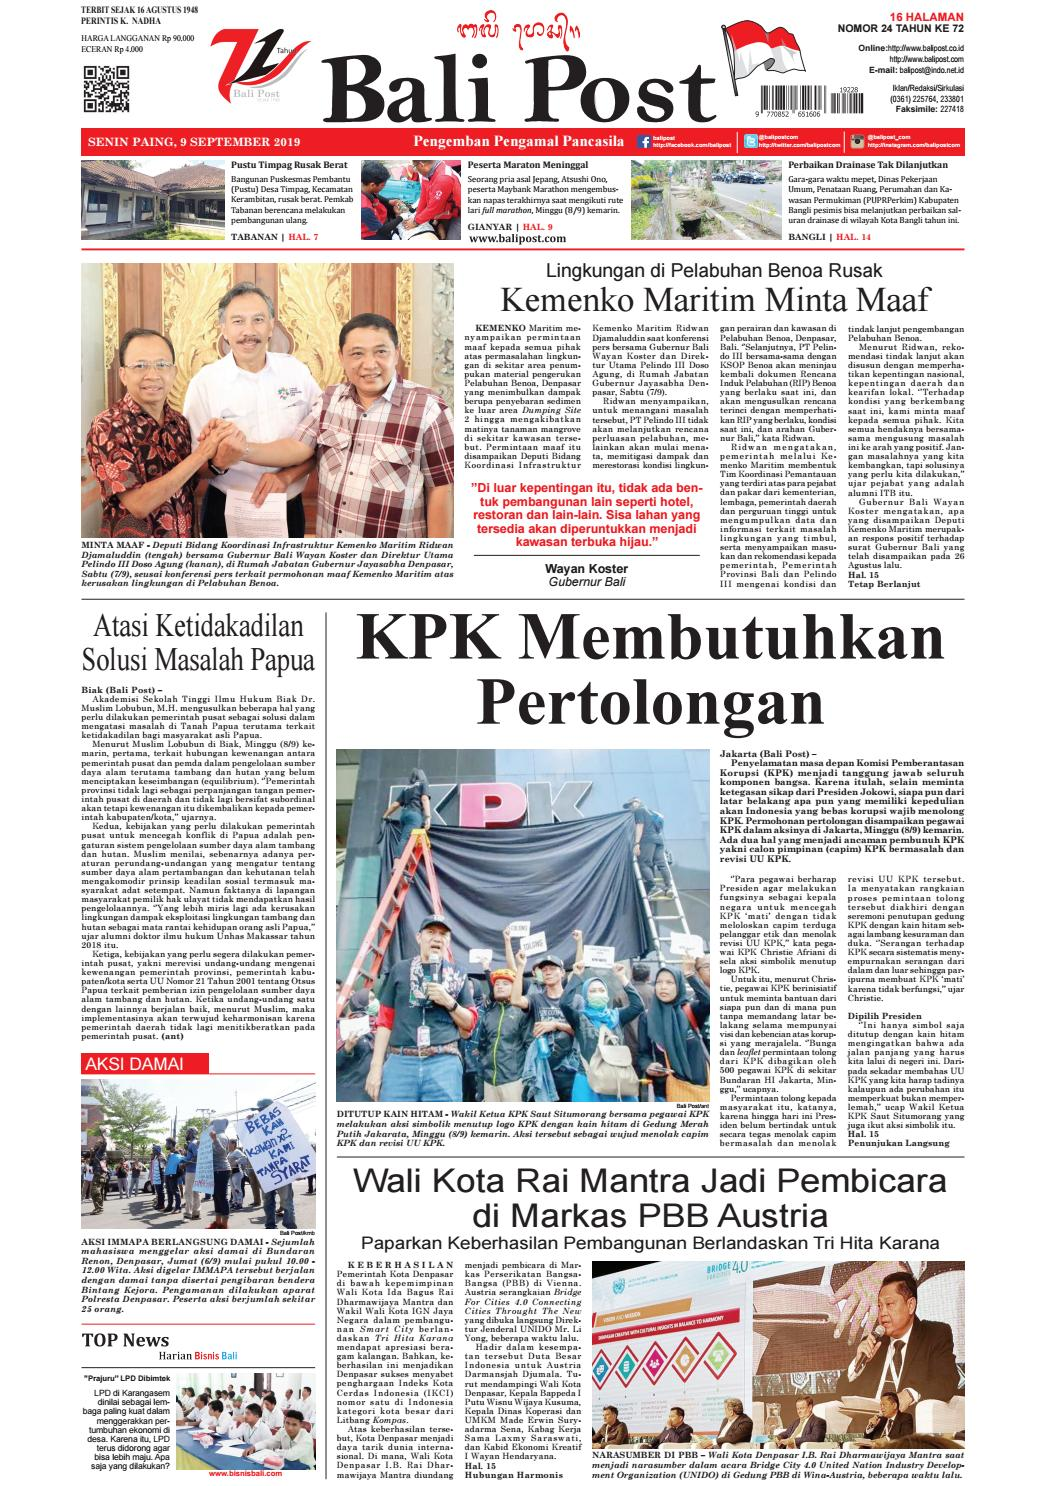 Edisi Senin 9 September 2019